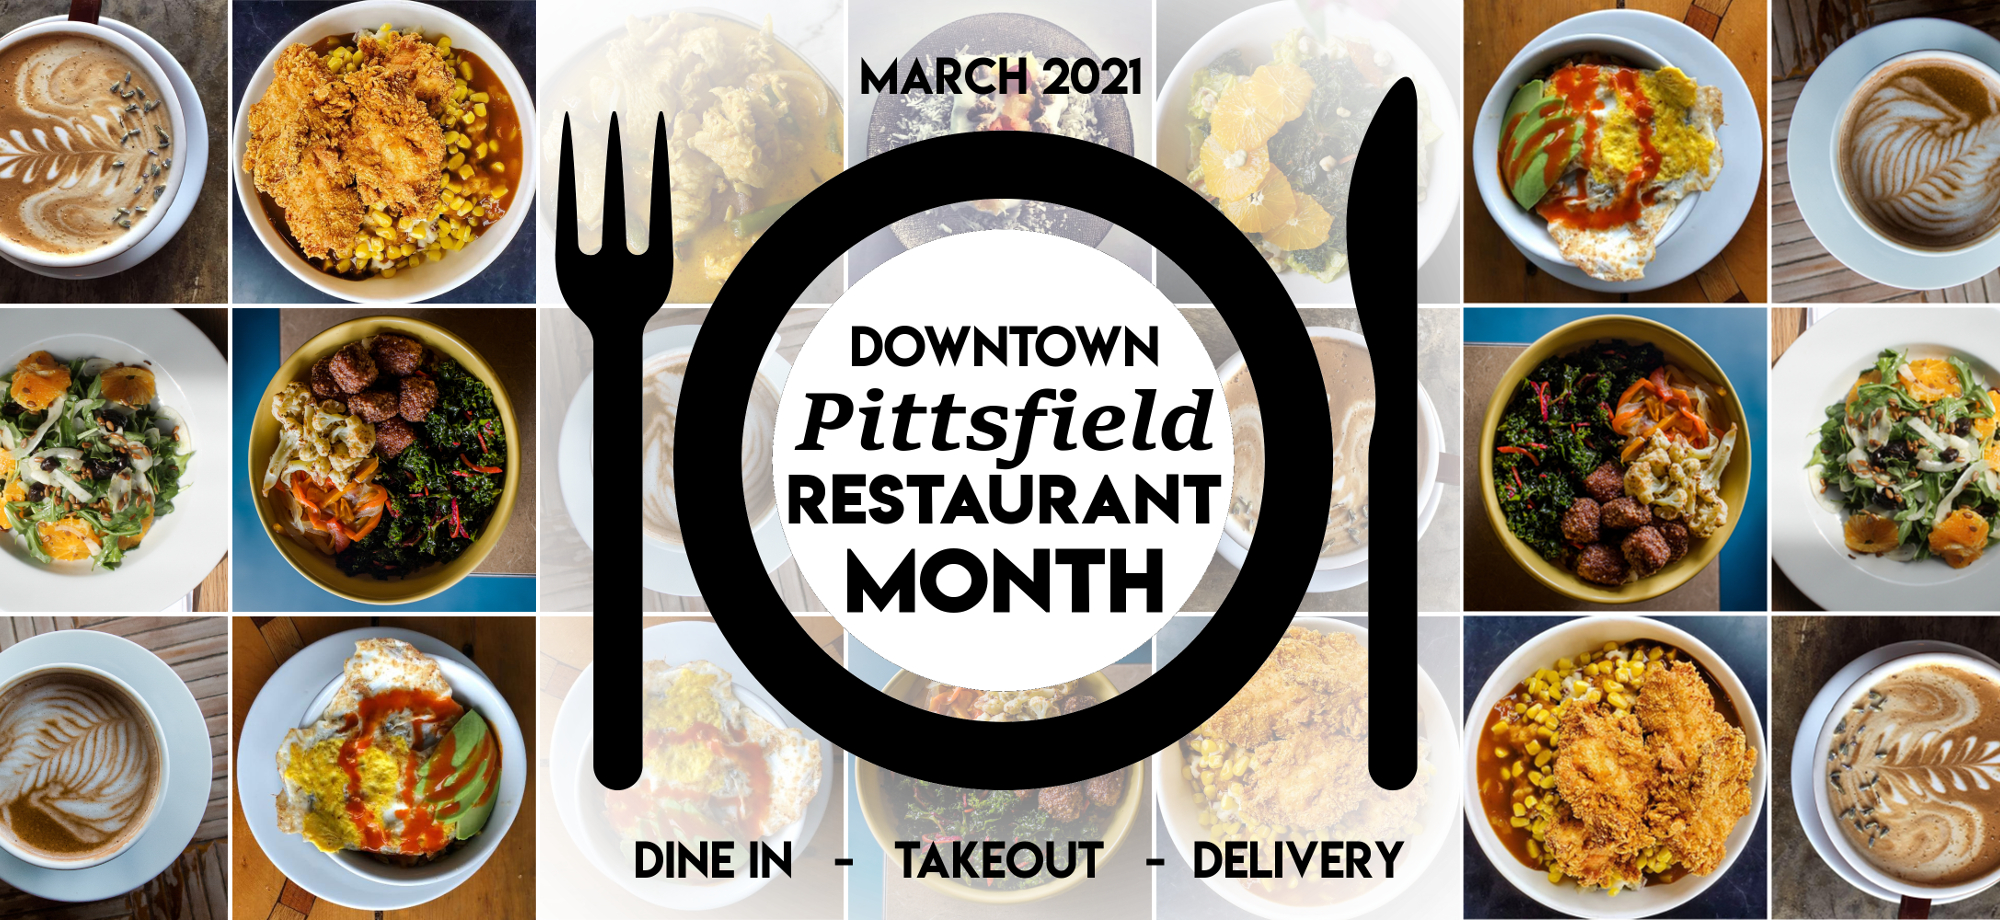 Pittsfield Restaurant Month